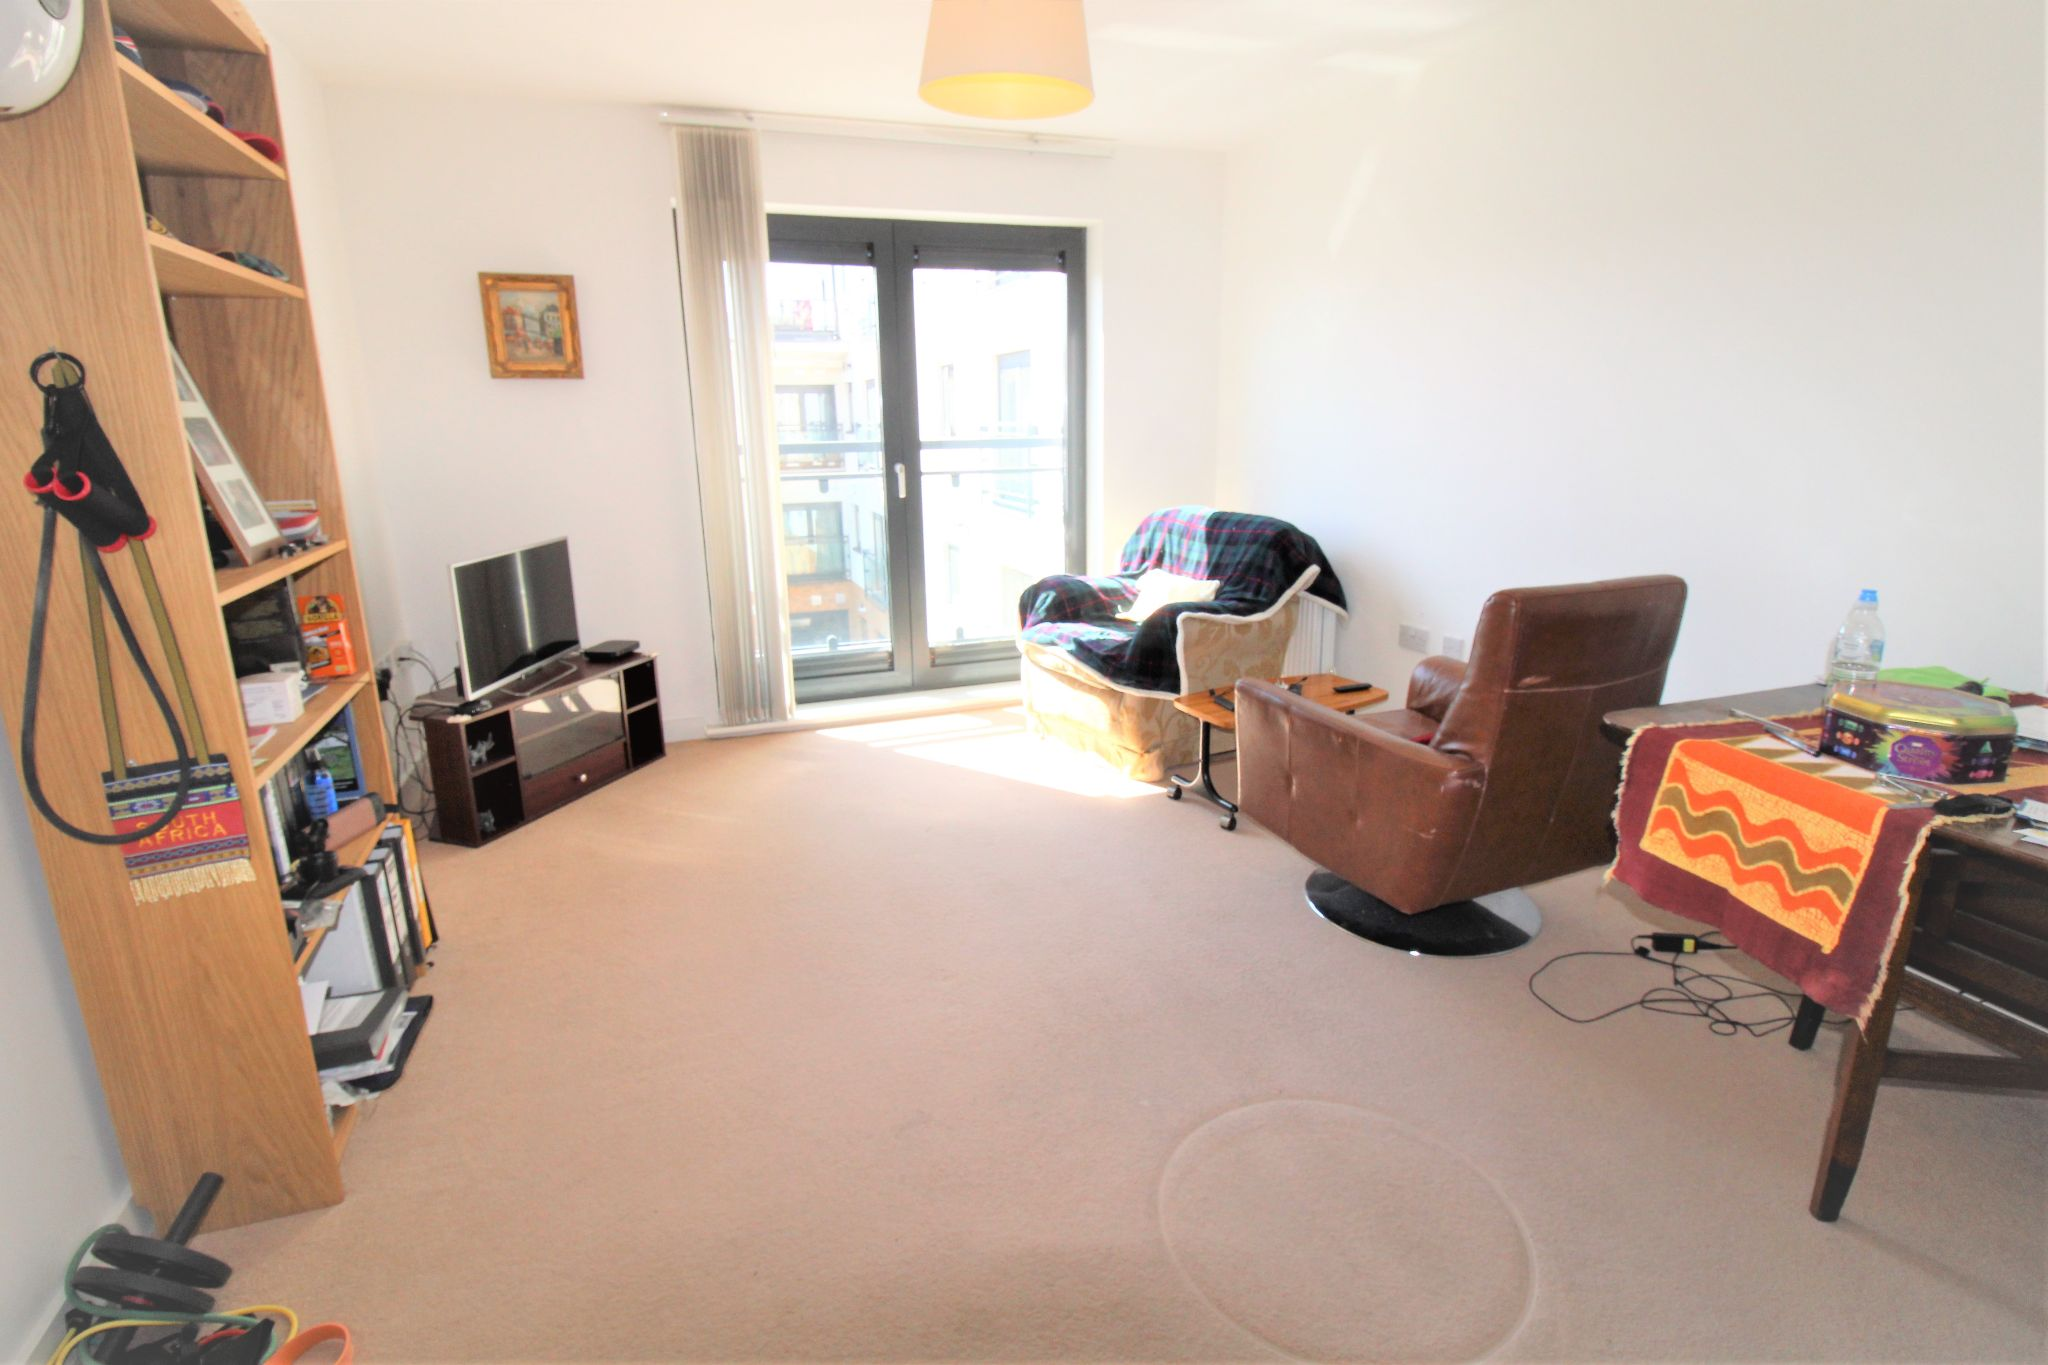 1 Bedroom Apartment Flat/apartment For Sale - Living room